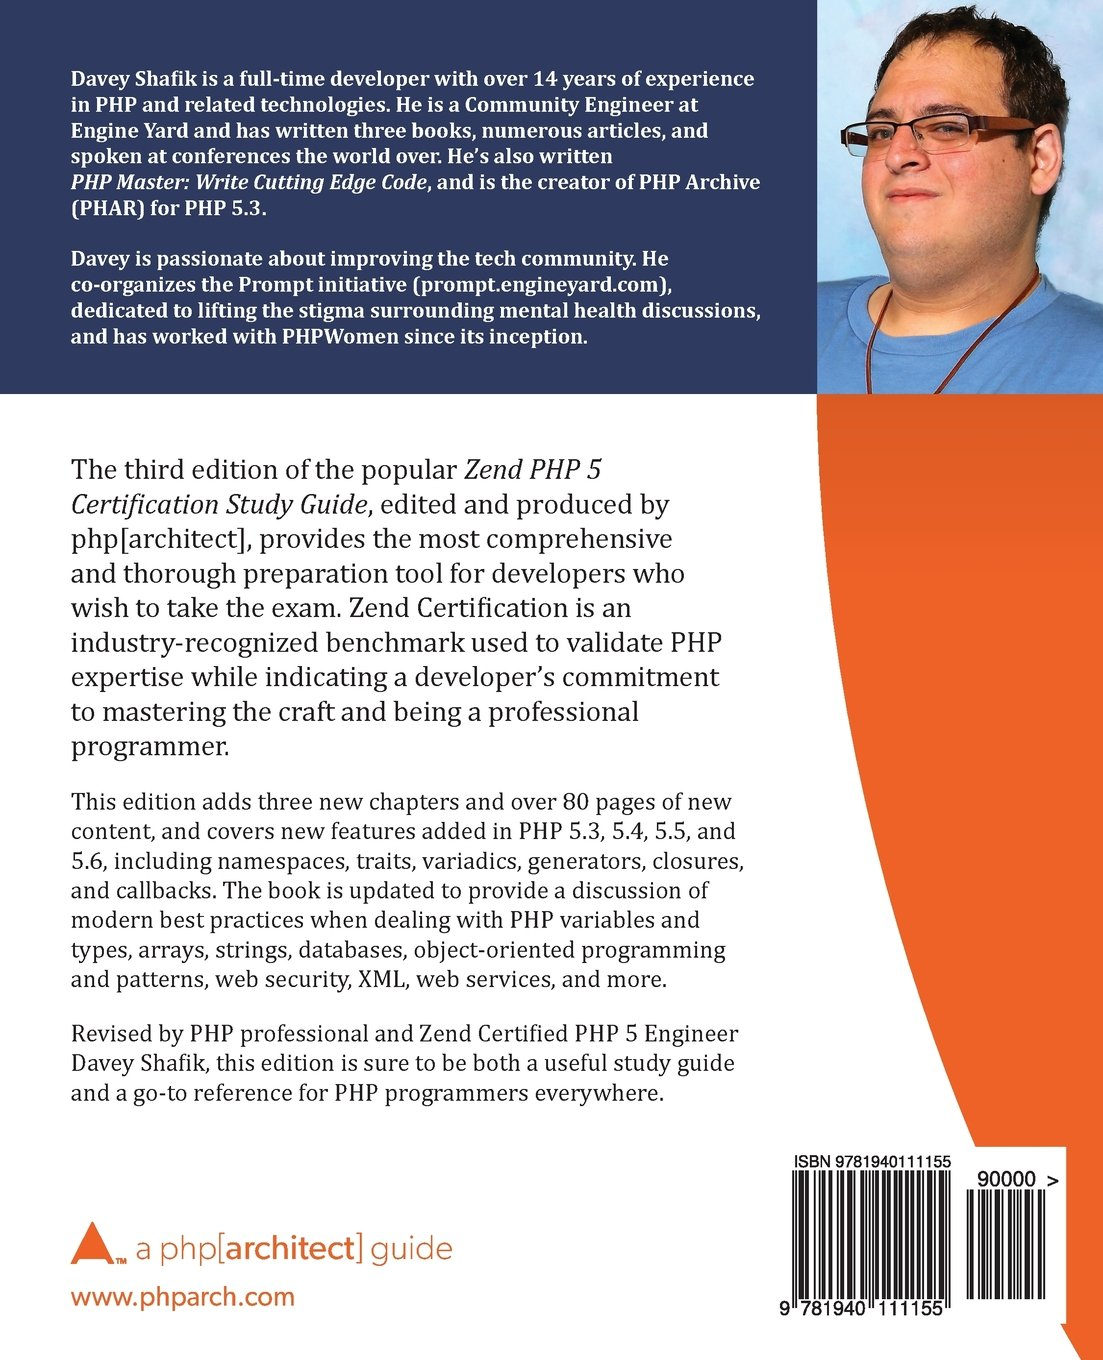 Zend php 5 certification study guide a phparchitect guide zend php 5 certification study guide a phparchitect guide davey shafik ben ramsey oscar merida eli white kevin bruce 9781940111155 amazon 1betcityfo Choice Image